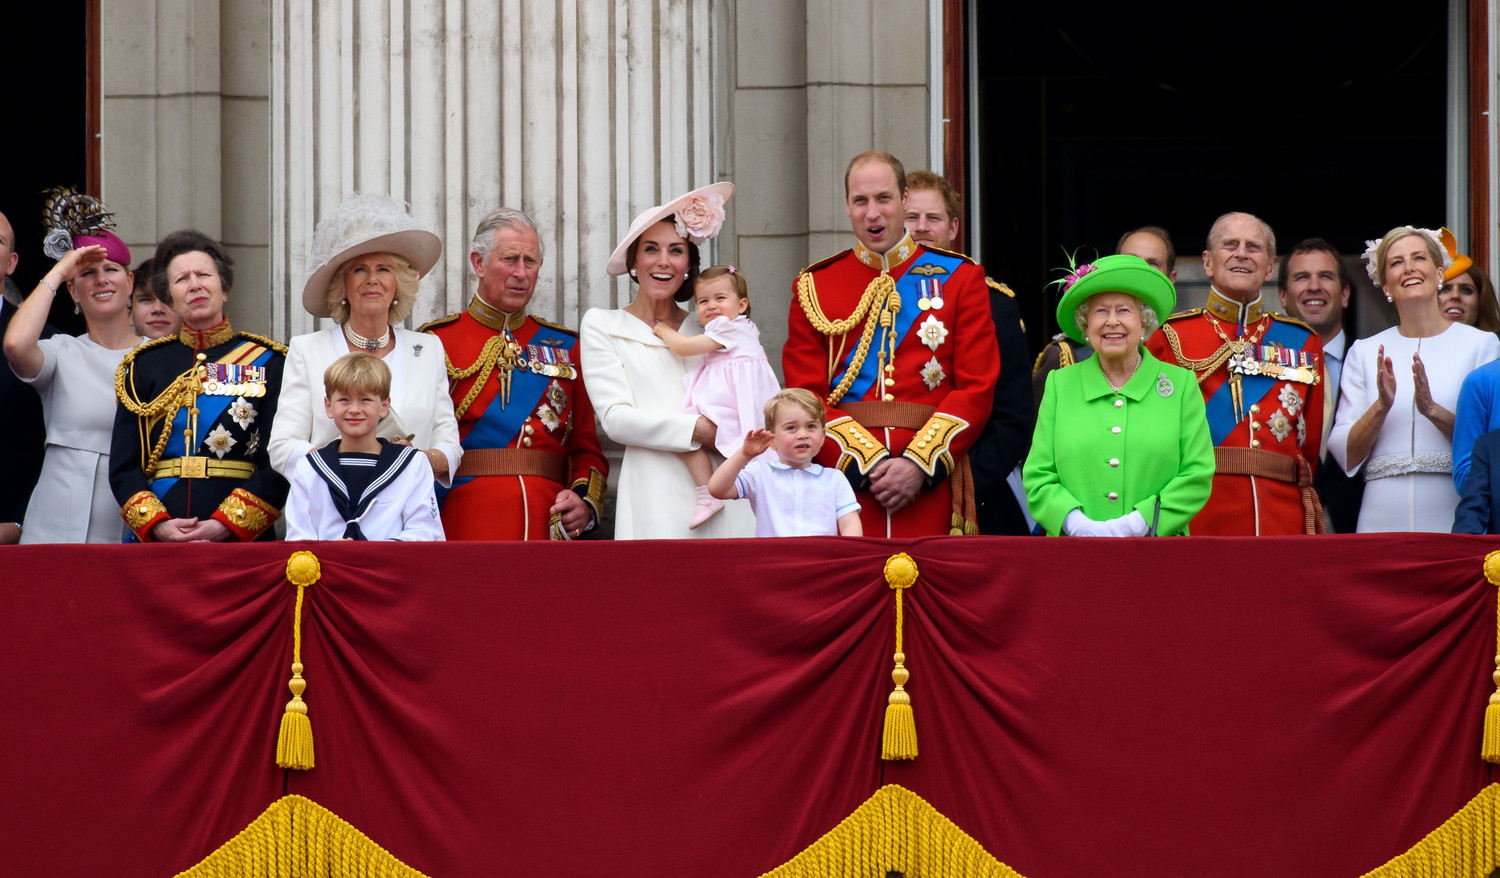 The royal family, with Prince William in the center alongside his wife, Catherine, and their two children, in London during the Trooping the Colour that year marked the queen's 90th birthday, June 11, 2016.